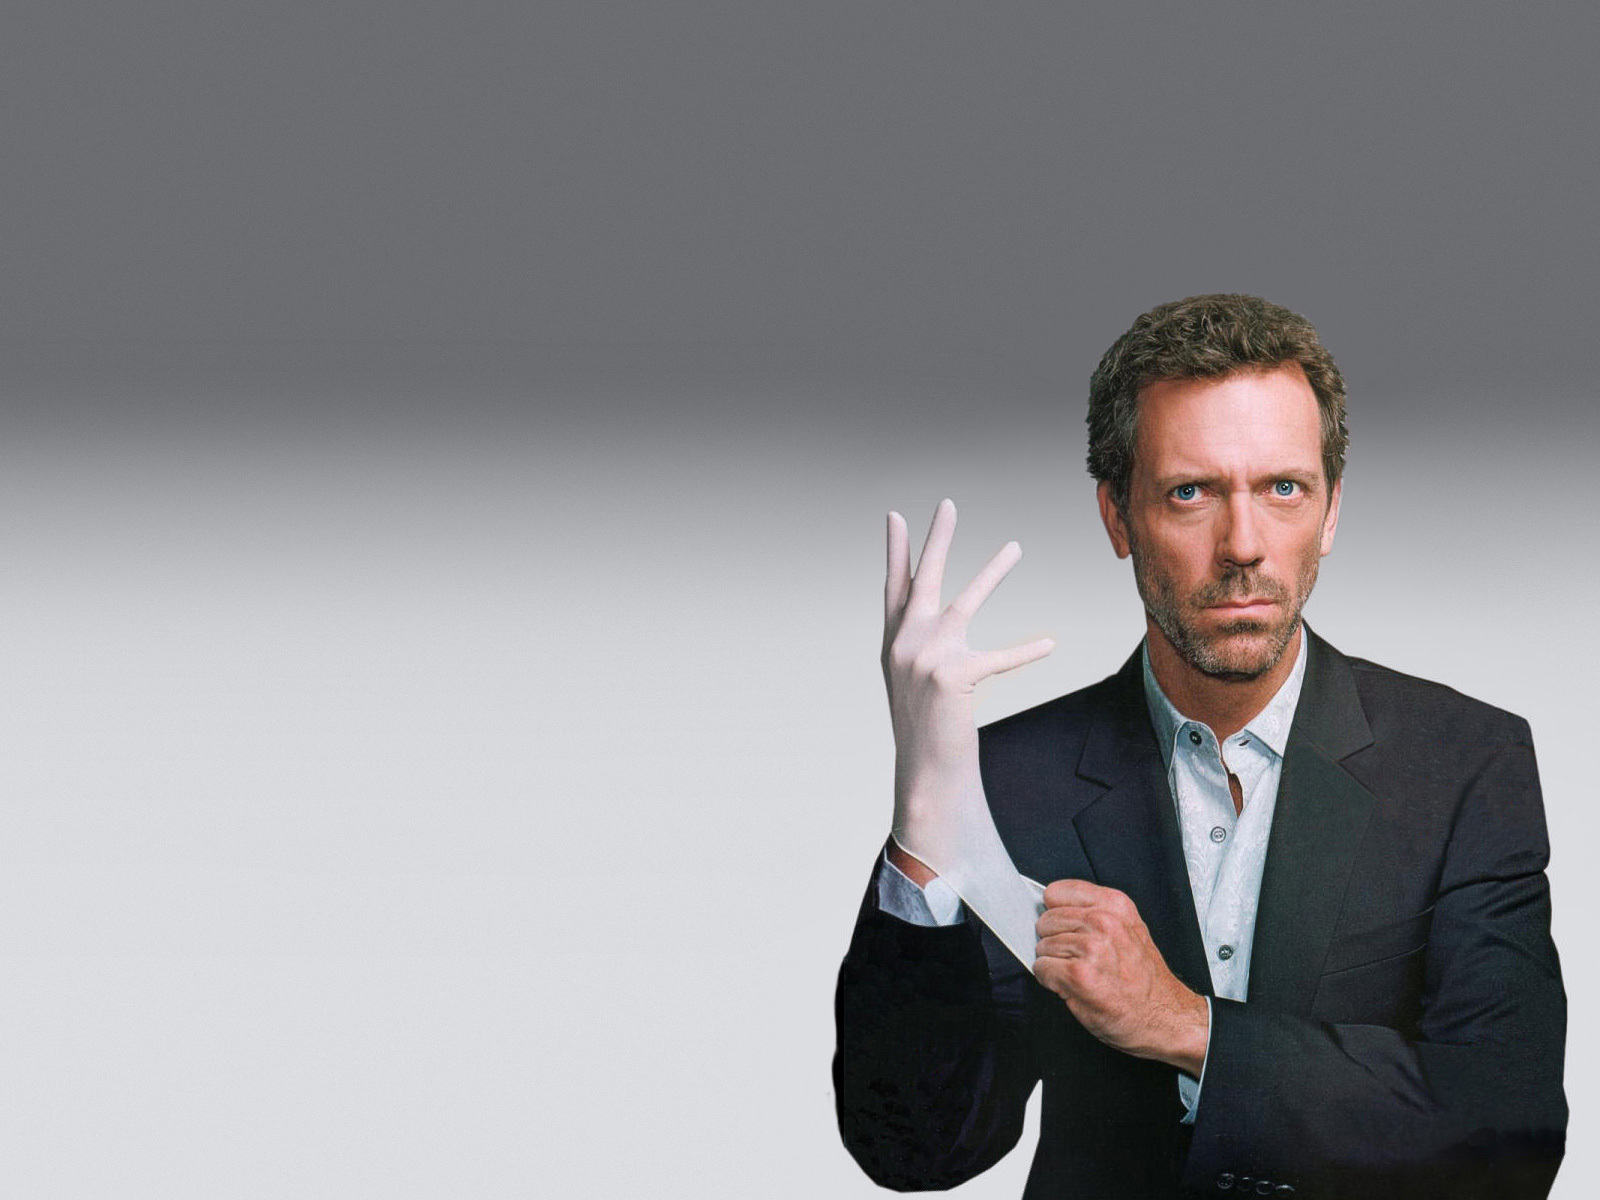 download wallpaper dr house - photo #18